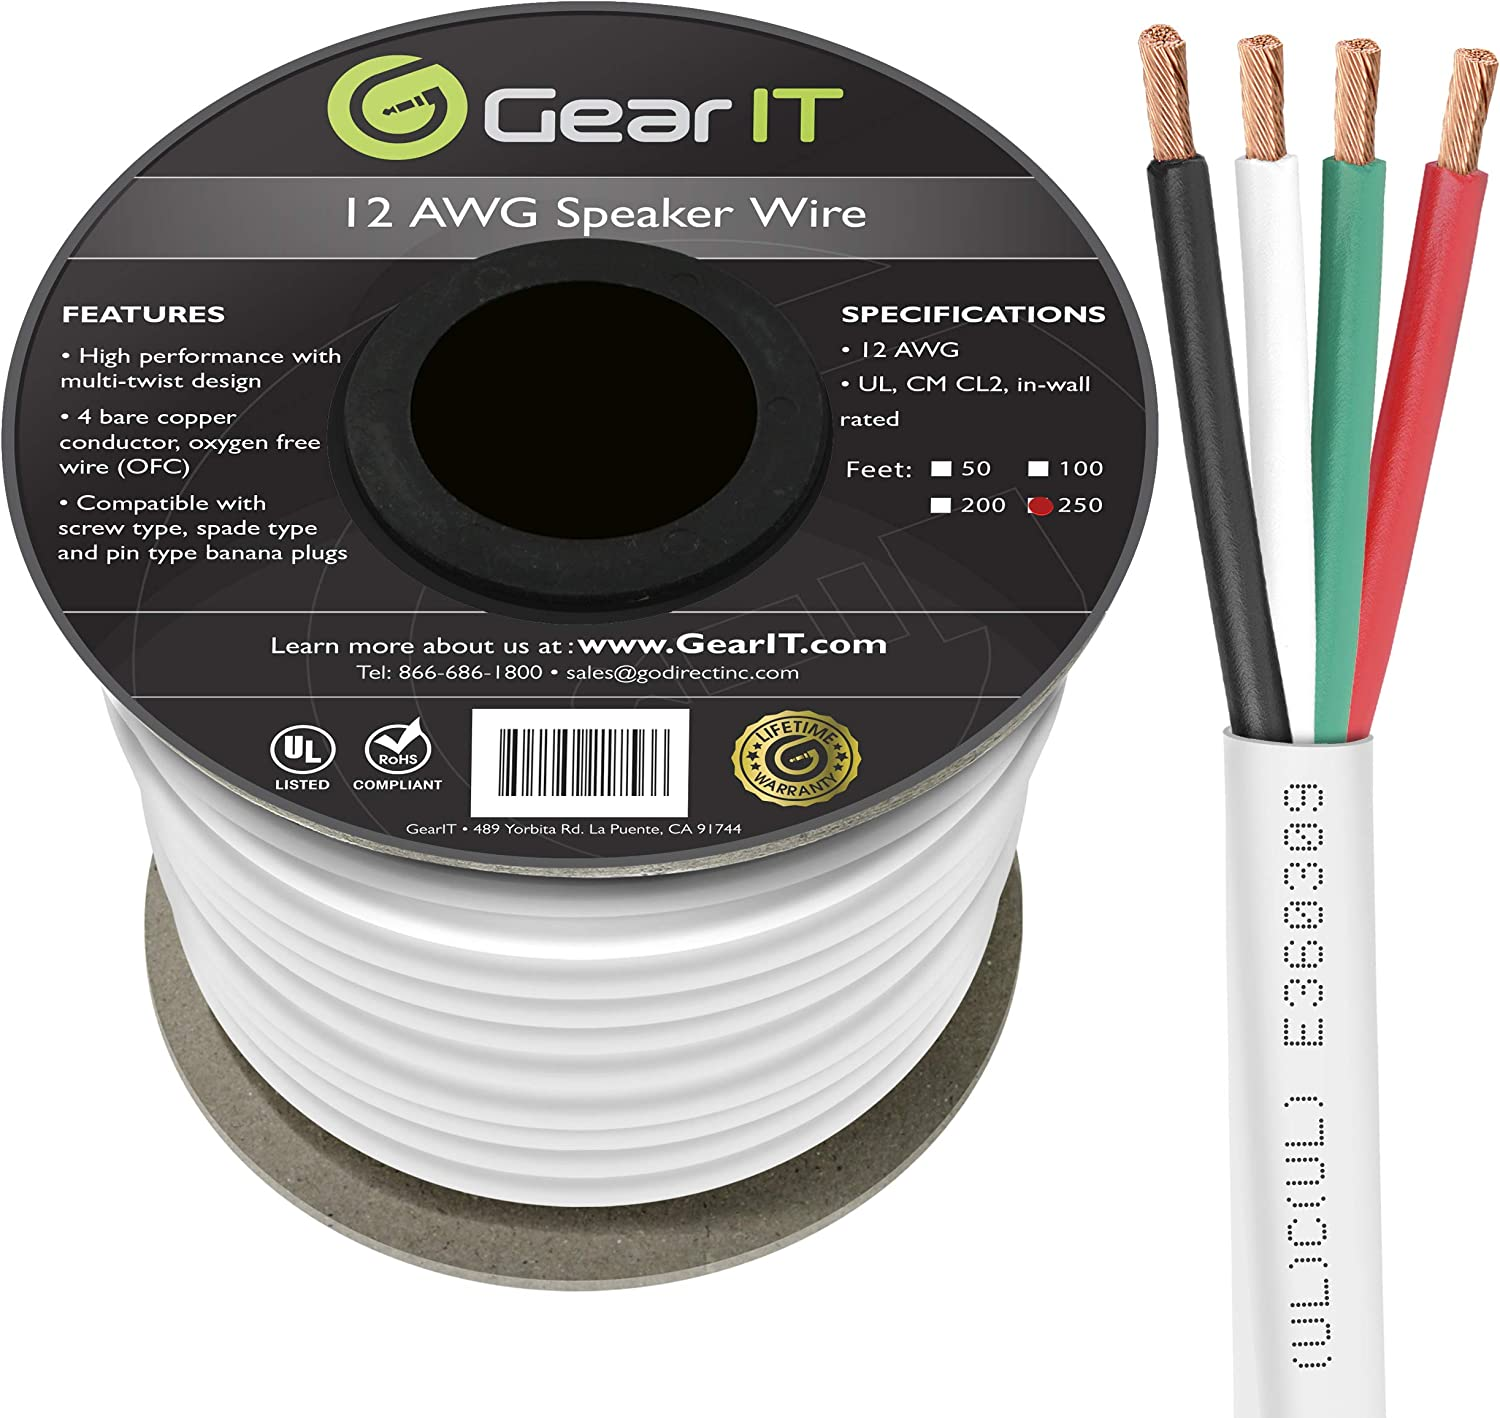 100 Feet // 30.48 Meters GearIT Pro Series 12 Gauge 4-Conductor CL2 Rated 12 AWG OFC Speaker Wire Rated for in-Wall Speaker Cable White